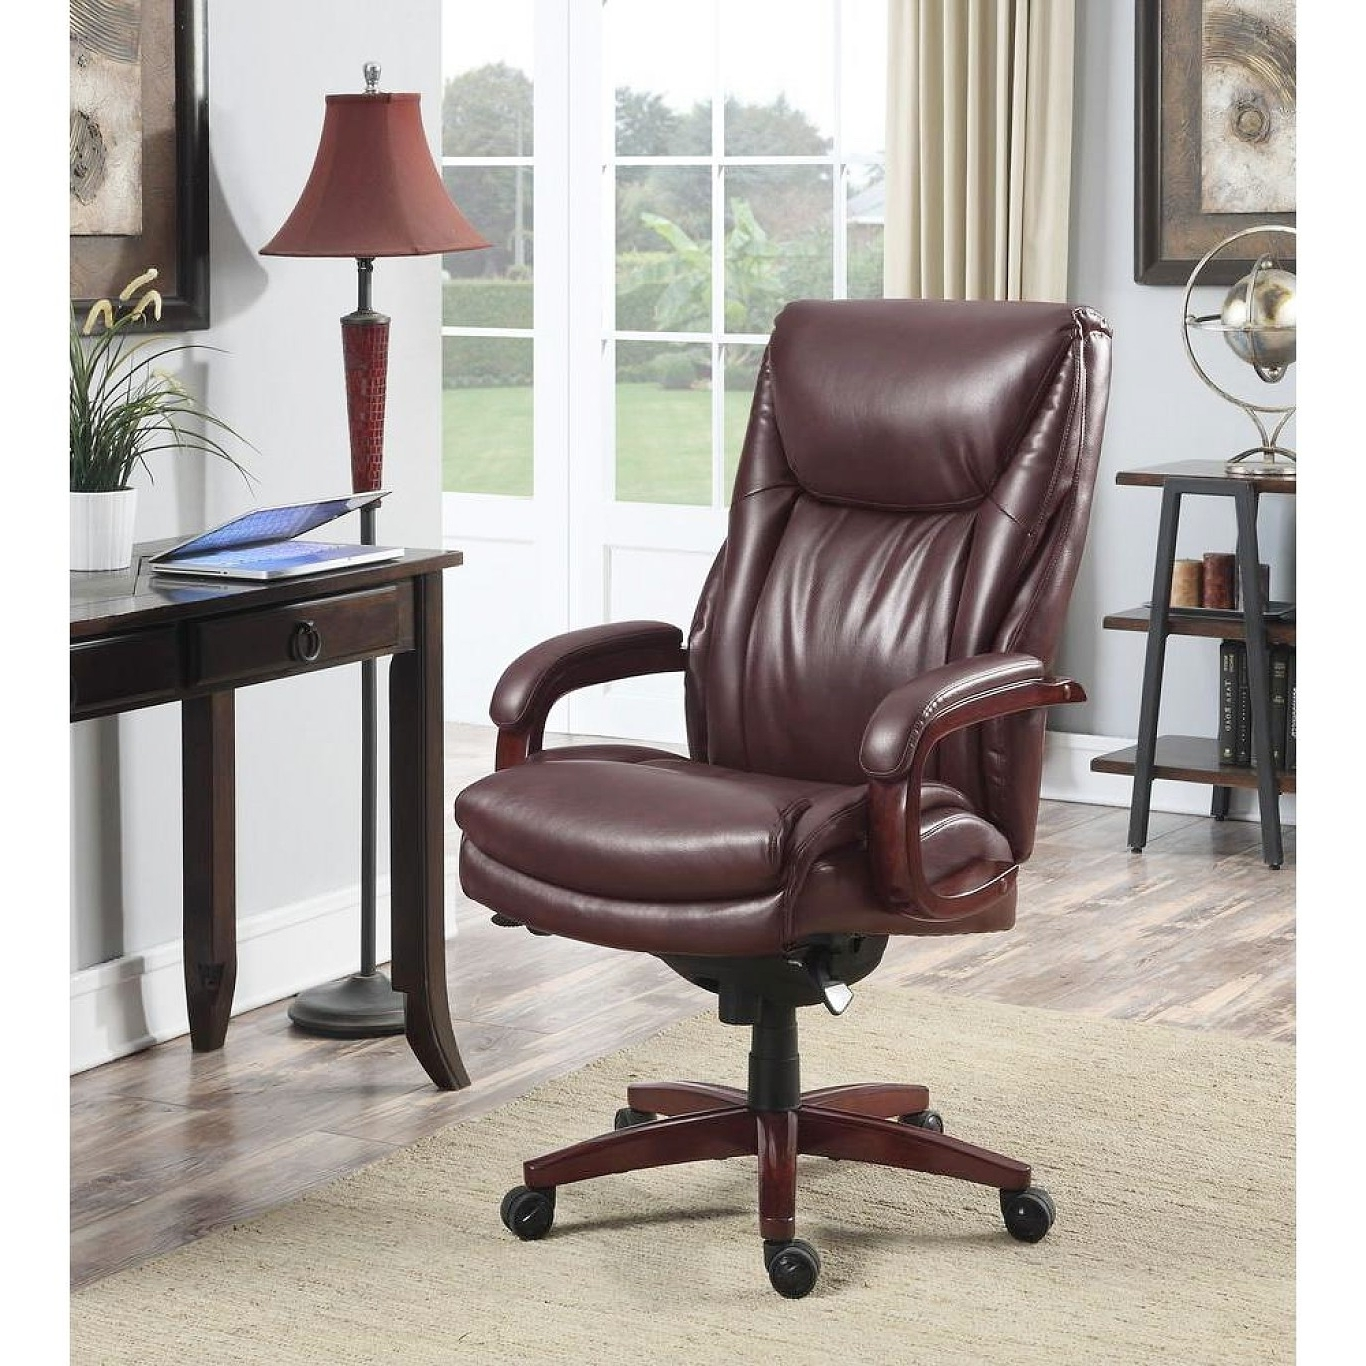 Office Chairs Office Wall Cabinets Executive Office Leather Chair Throughout 2018 Green Executive Office Chairs (View 13 of 20)